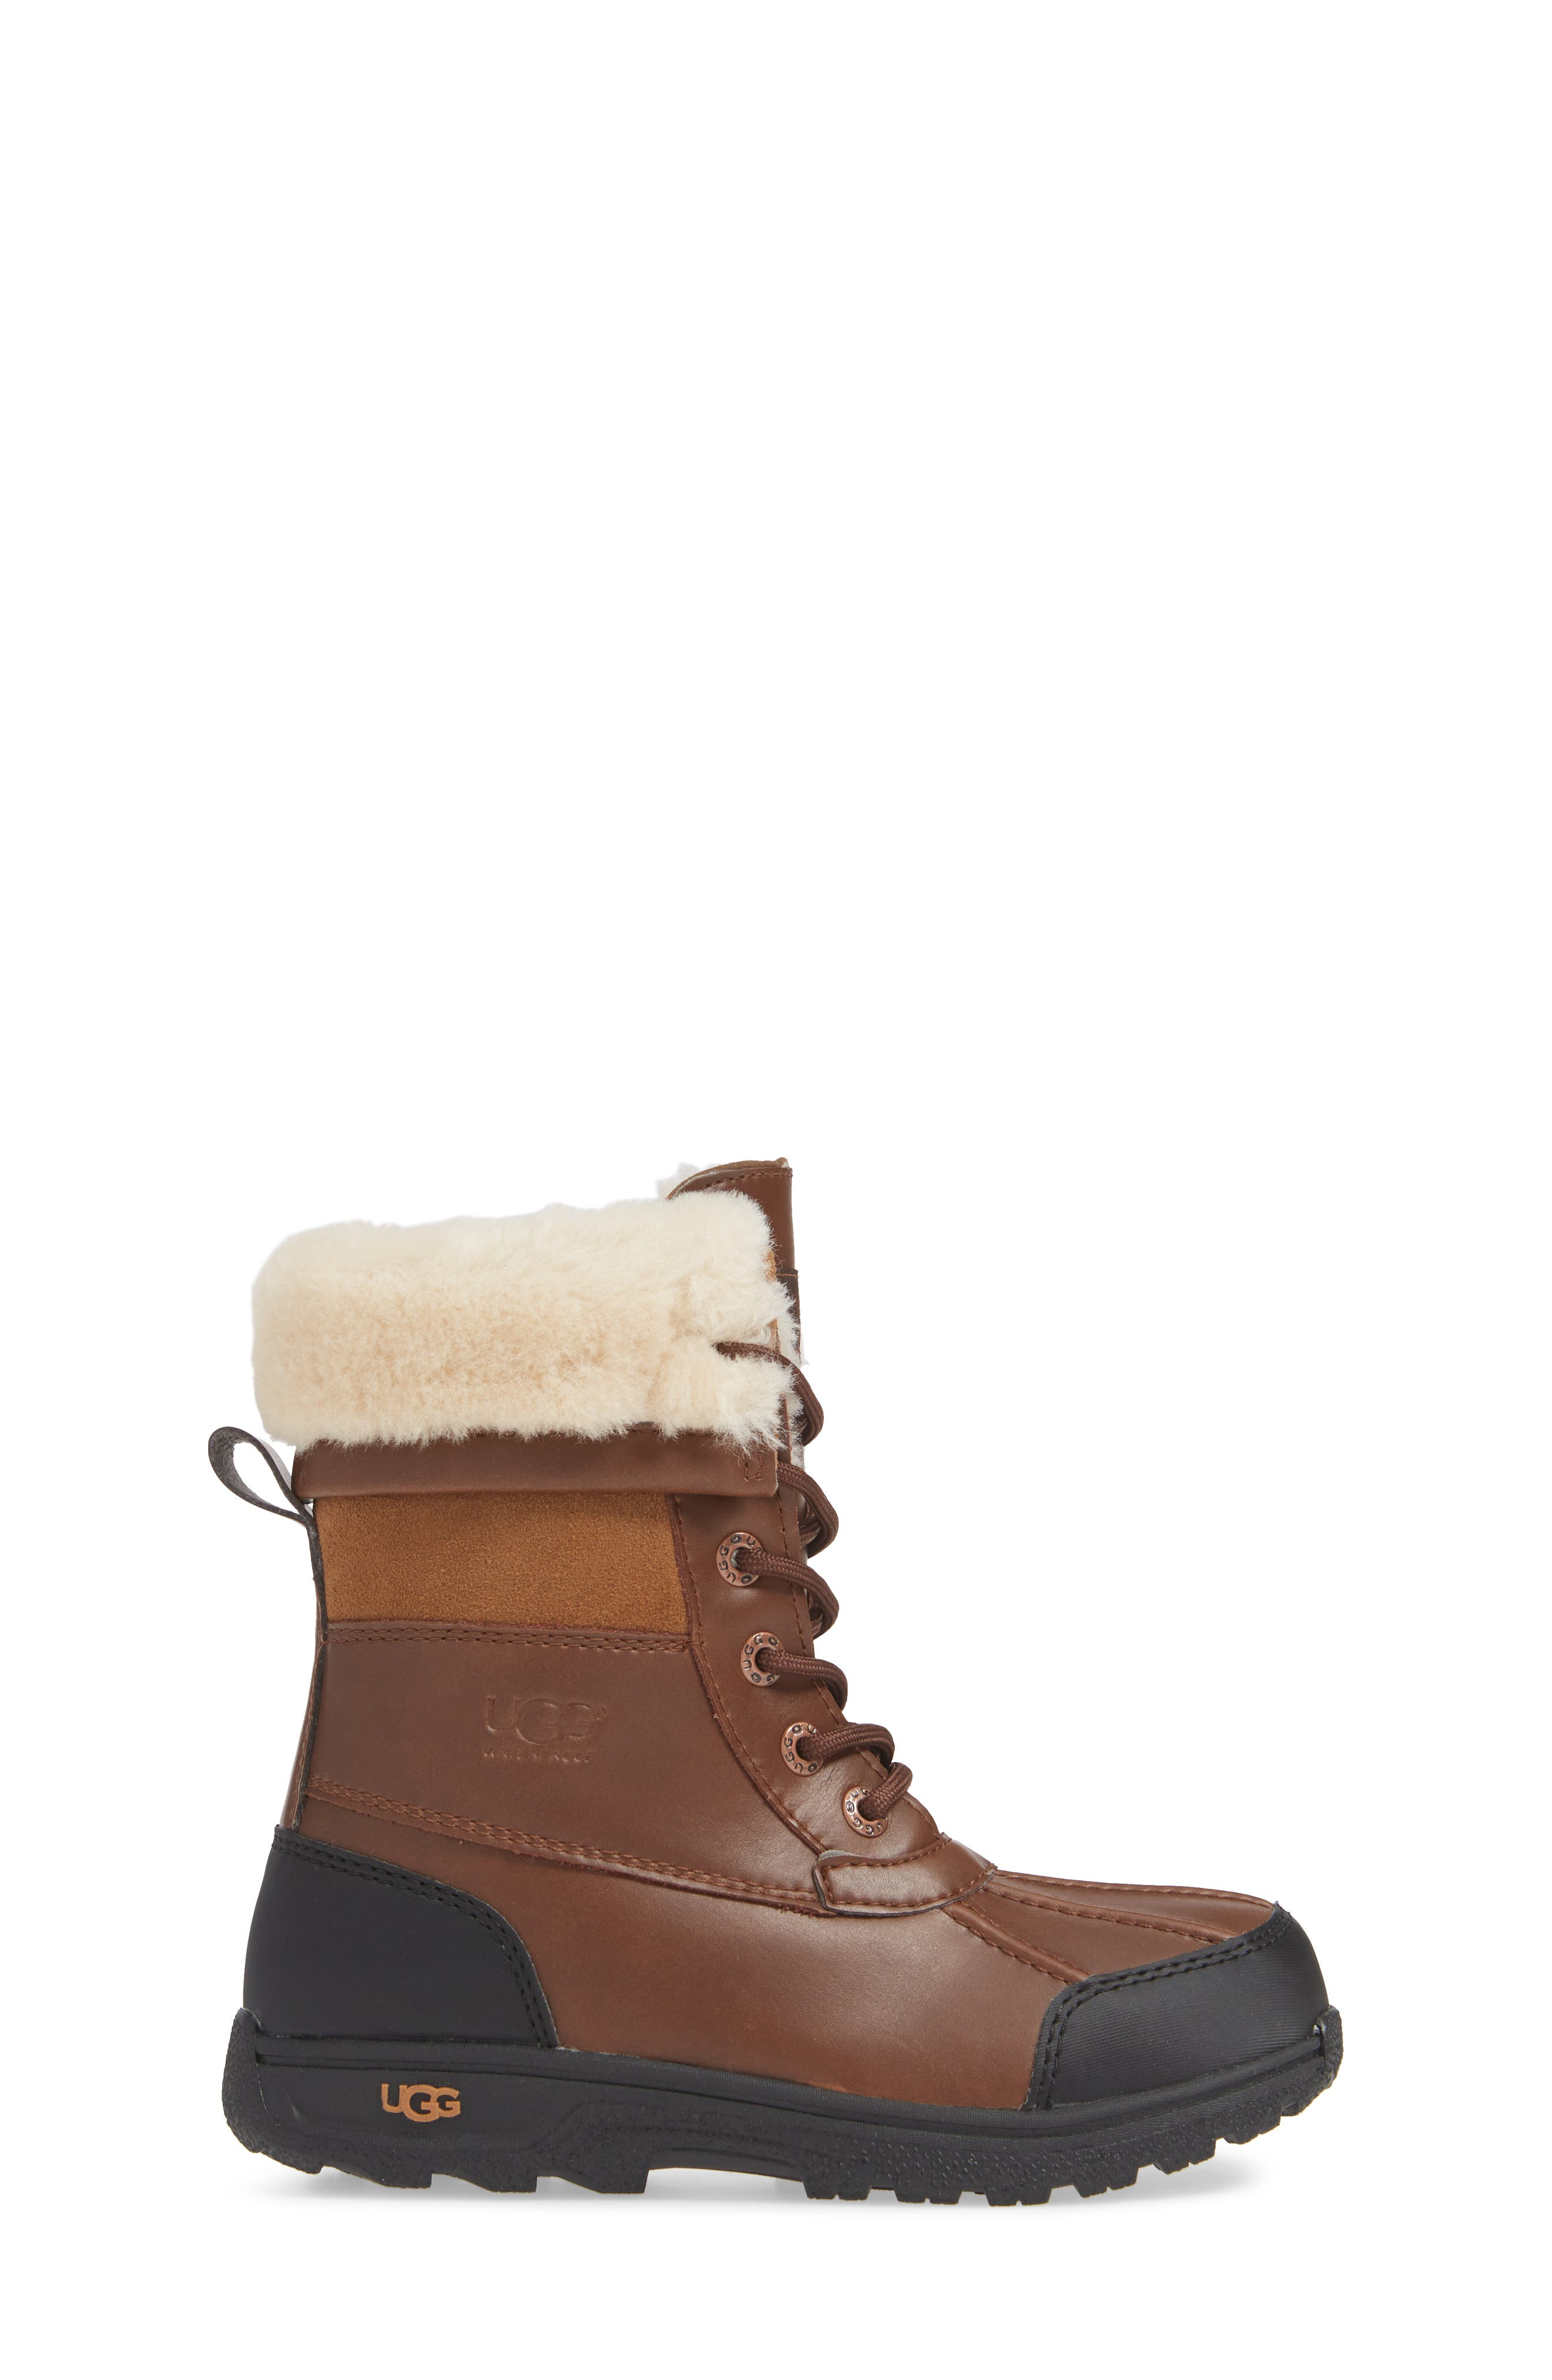 Butte II Waterproof Winter Boot,                             Alternate thumbnail 3, color,                             WORCHESTER